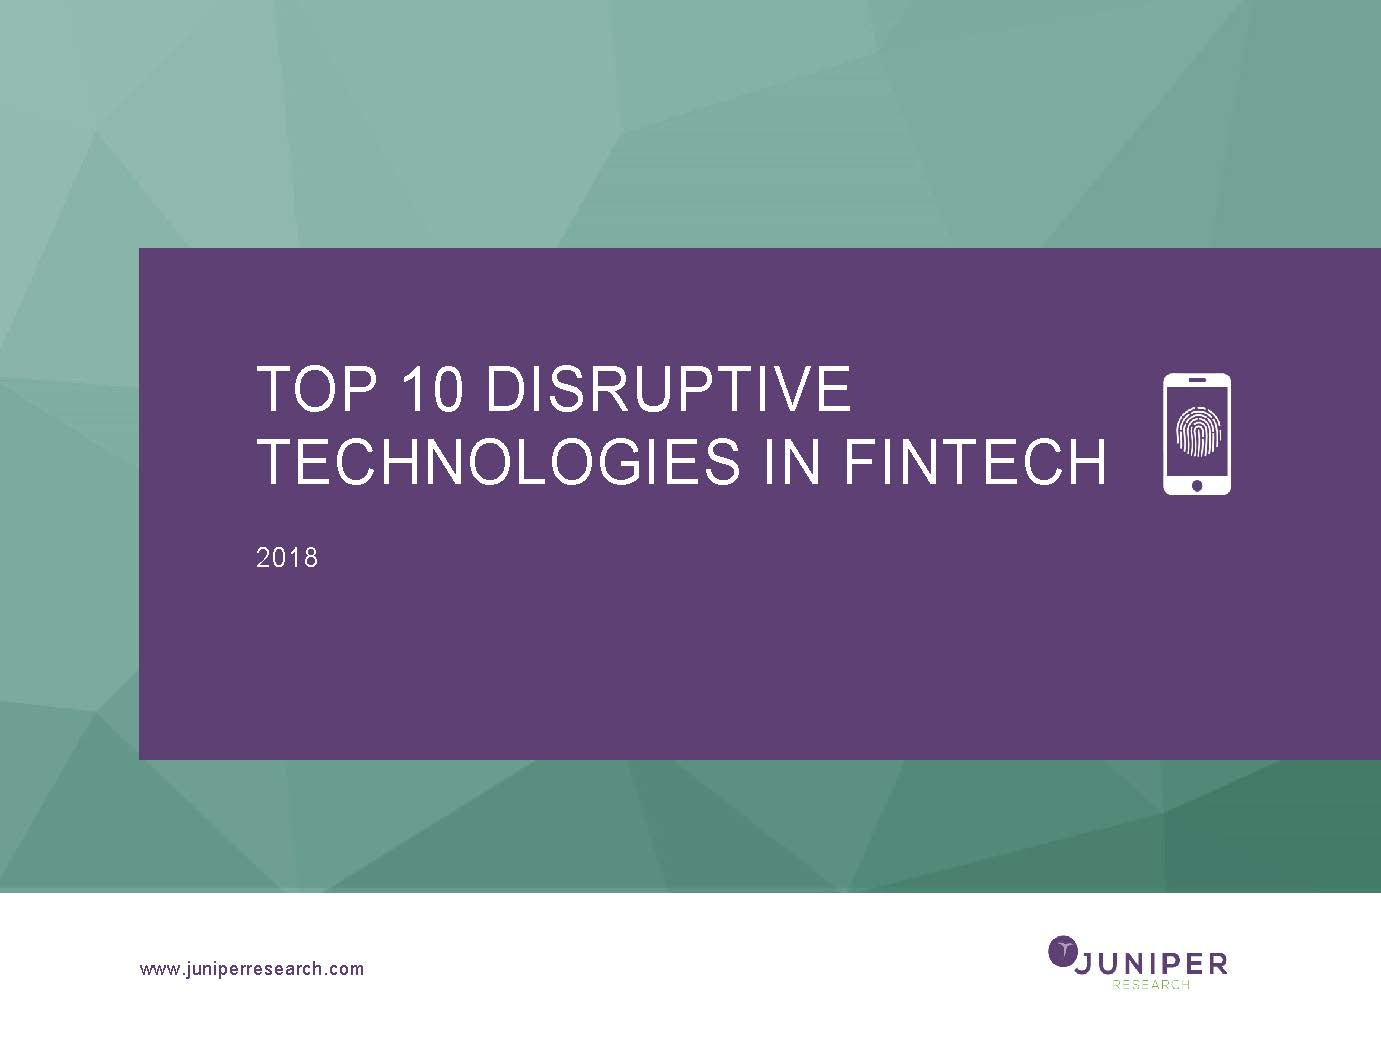 Top 10 Disruptive Technologies in Fintech